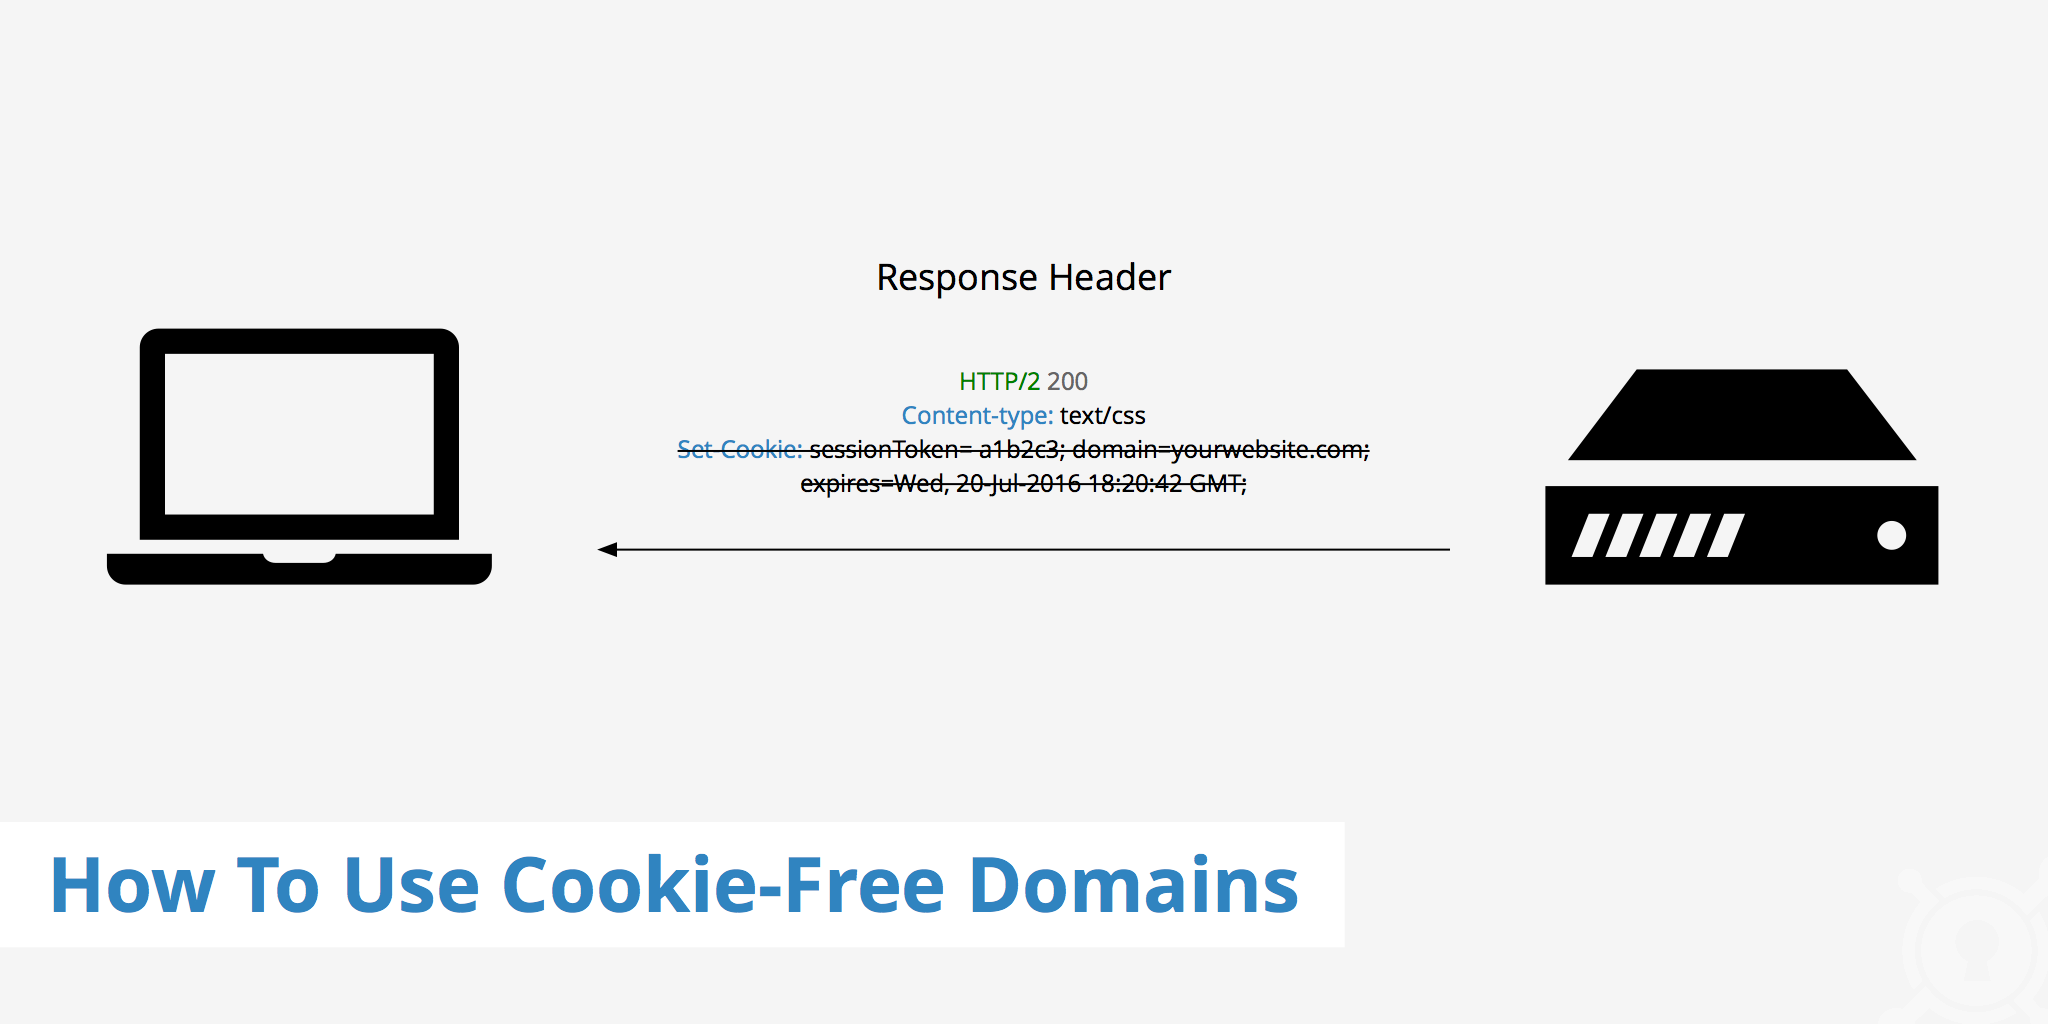 How To Use Cookie-Free Domains